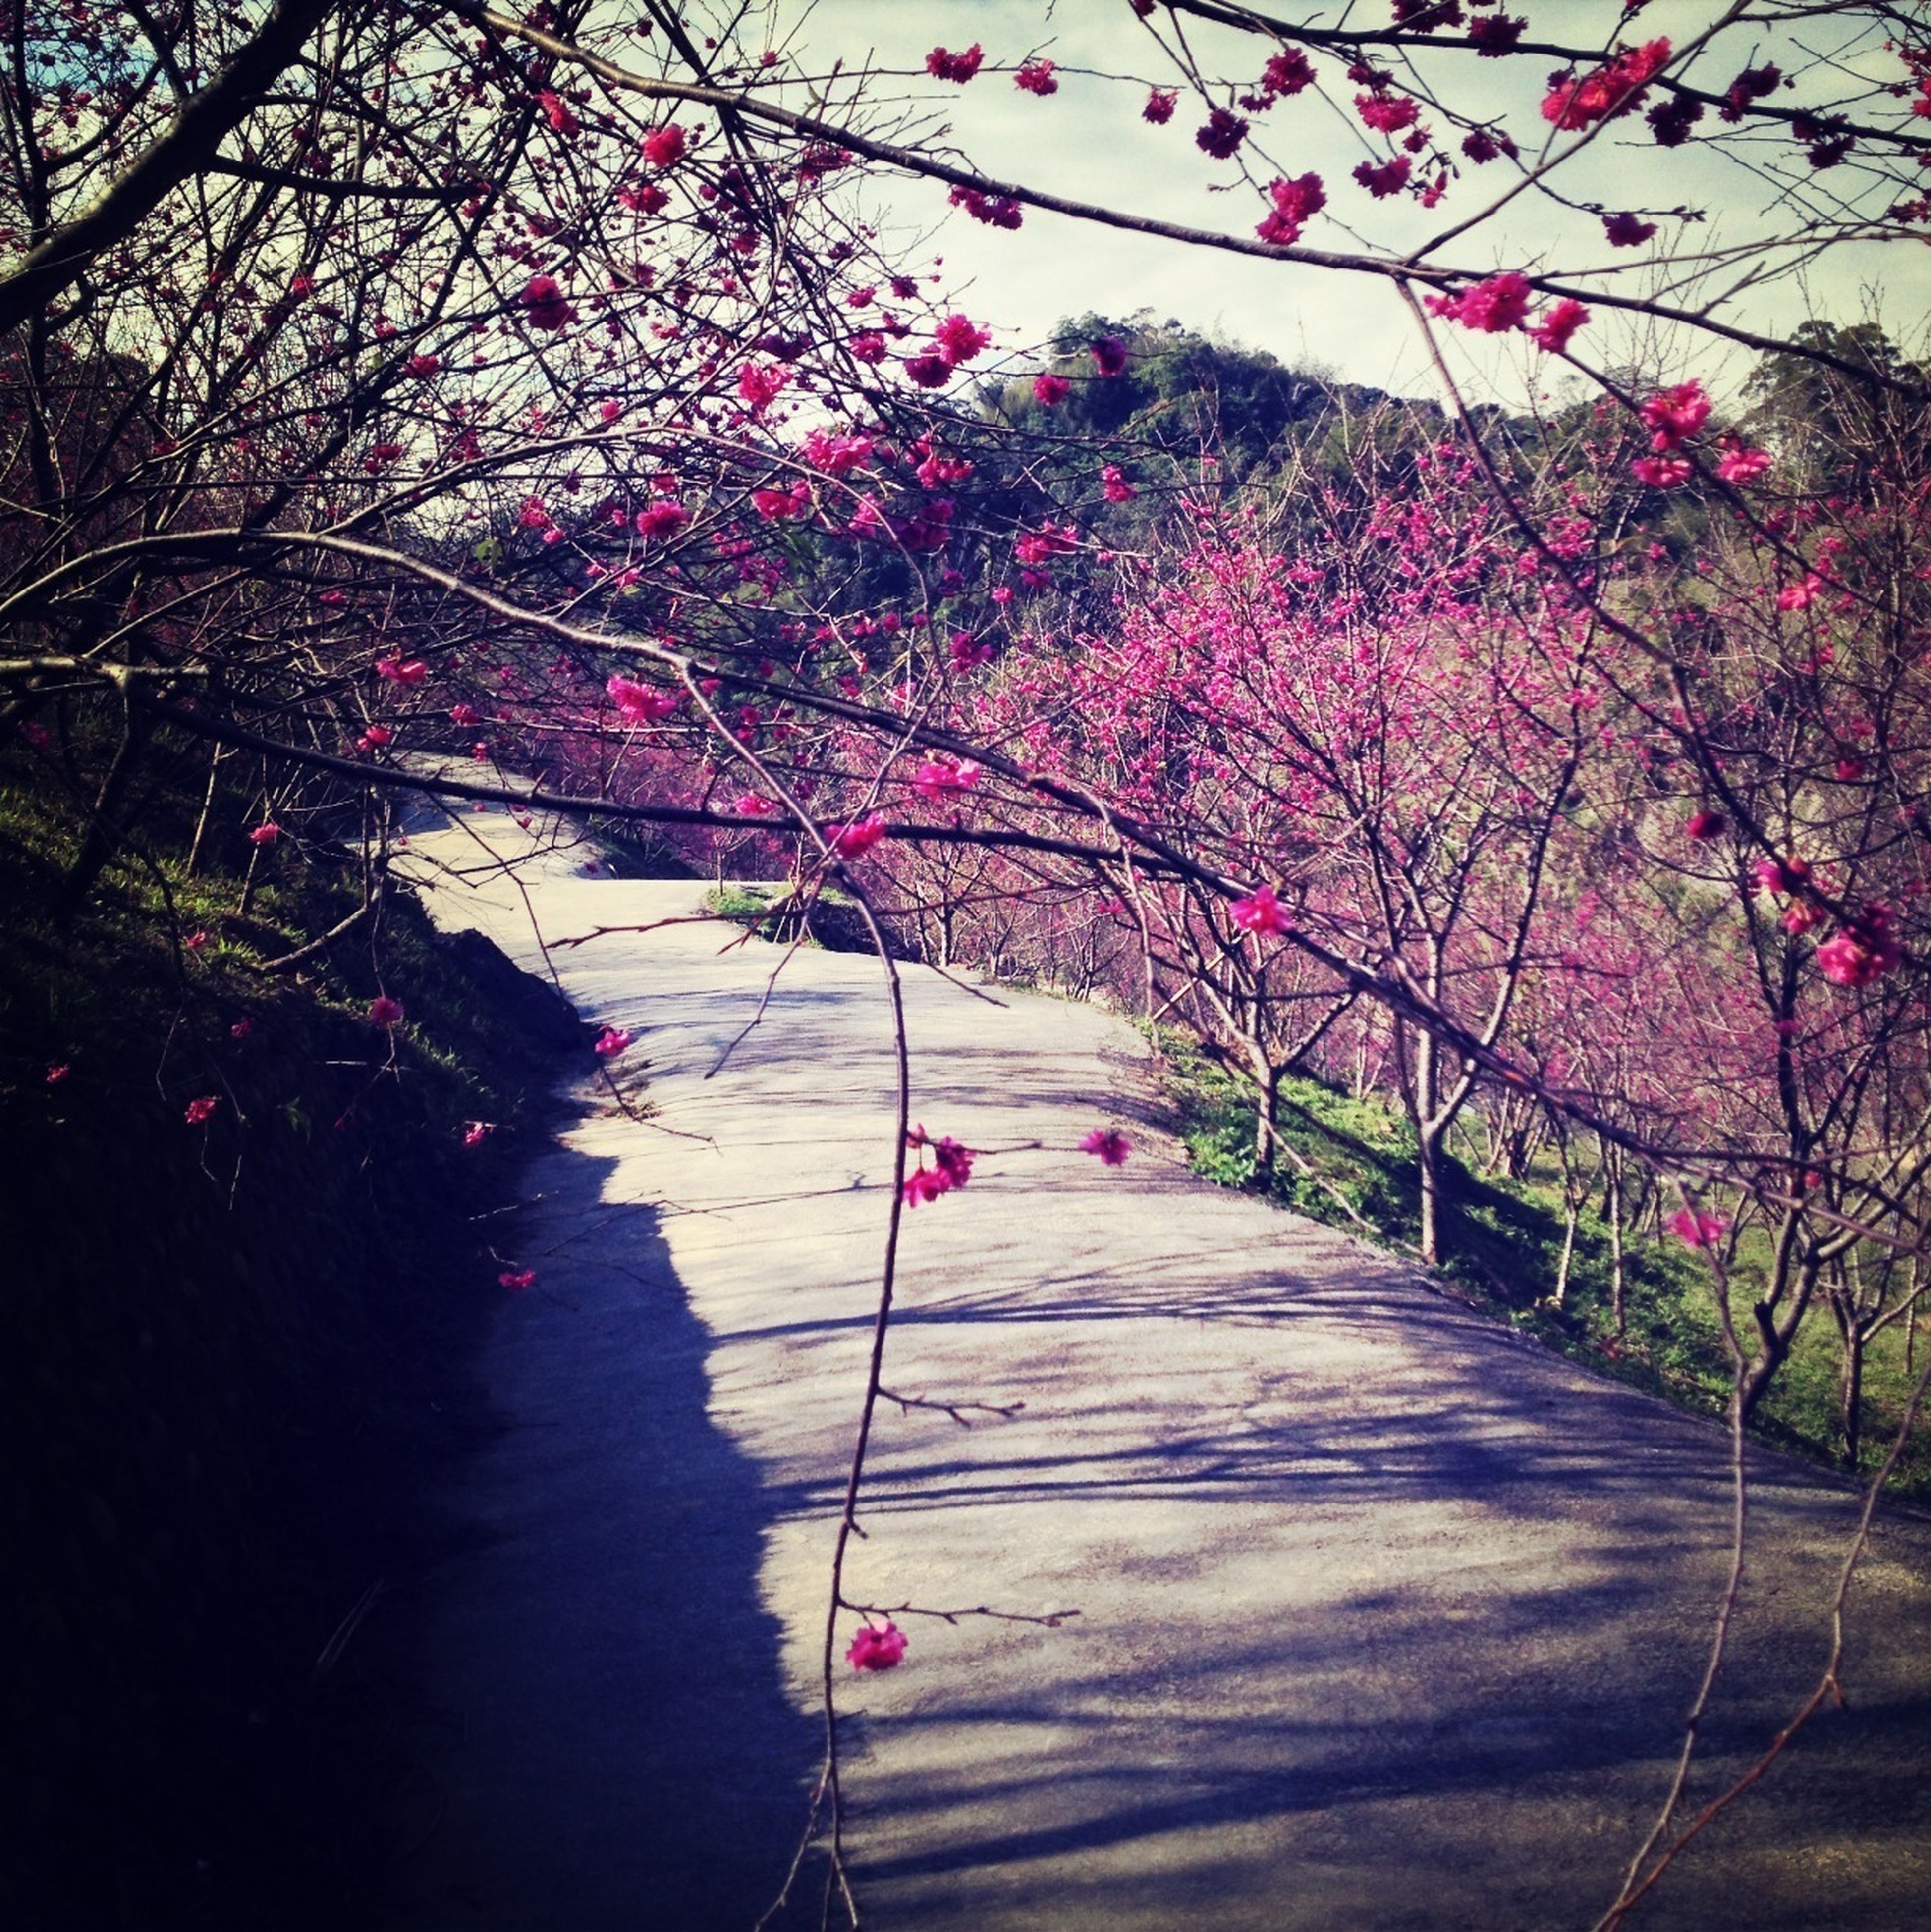 tree, flower, branch, growth, pink color, transportation, nature, bridge - man made structure, blossom, connection, the way forward, railing, beauty in nature, red, built structure, day, park - man made space, outdoors, road, freshness